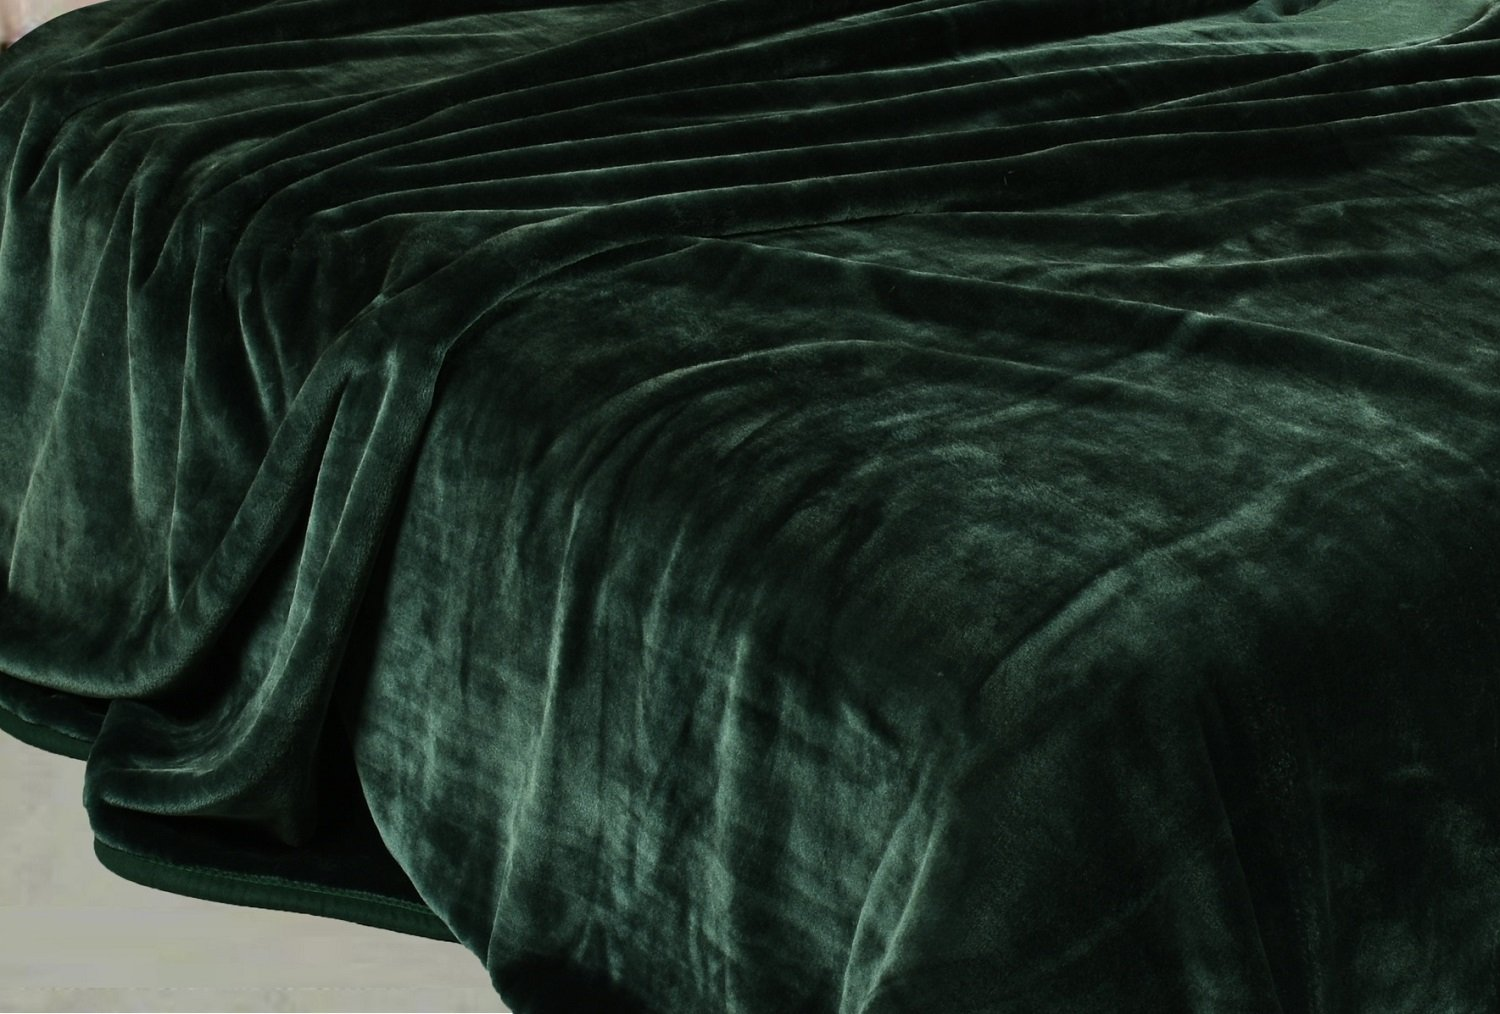 Chezmoi Collection Heavy Thick One Ply Korean Style Fur Mink Blanket 9-Pound Oversized King 105x92'' (King, Green)